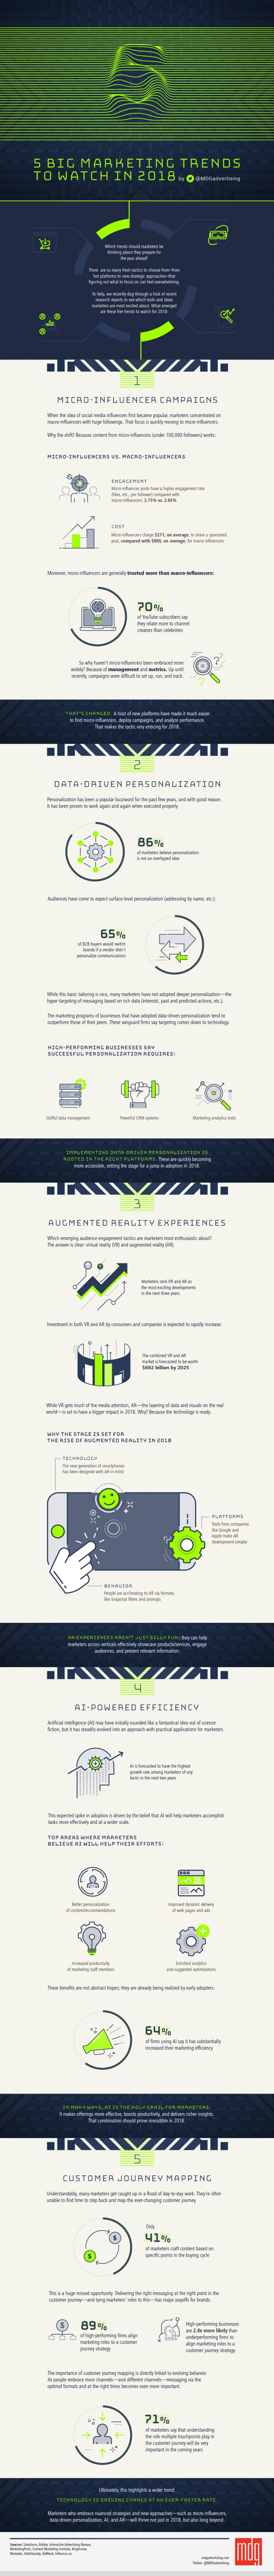 5 2018 Marketing Automation Trends Key to Small Business (INFOGRAPHIC)